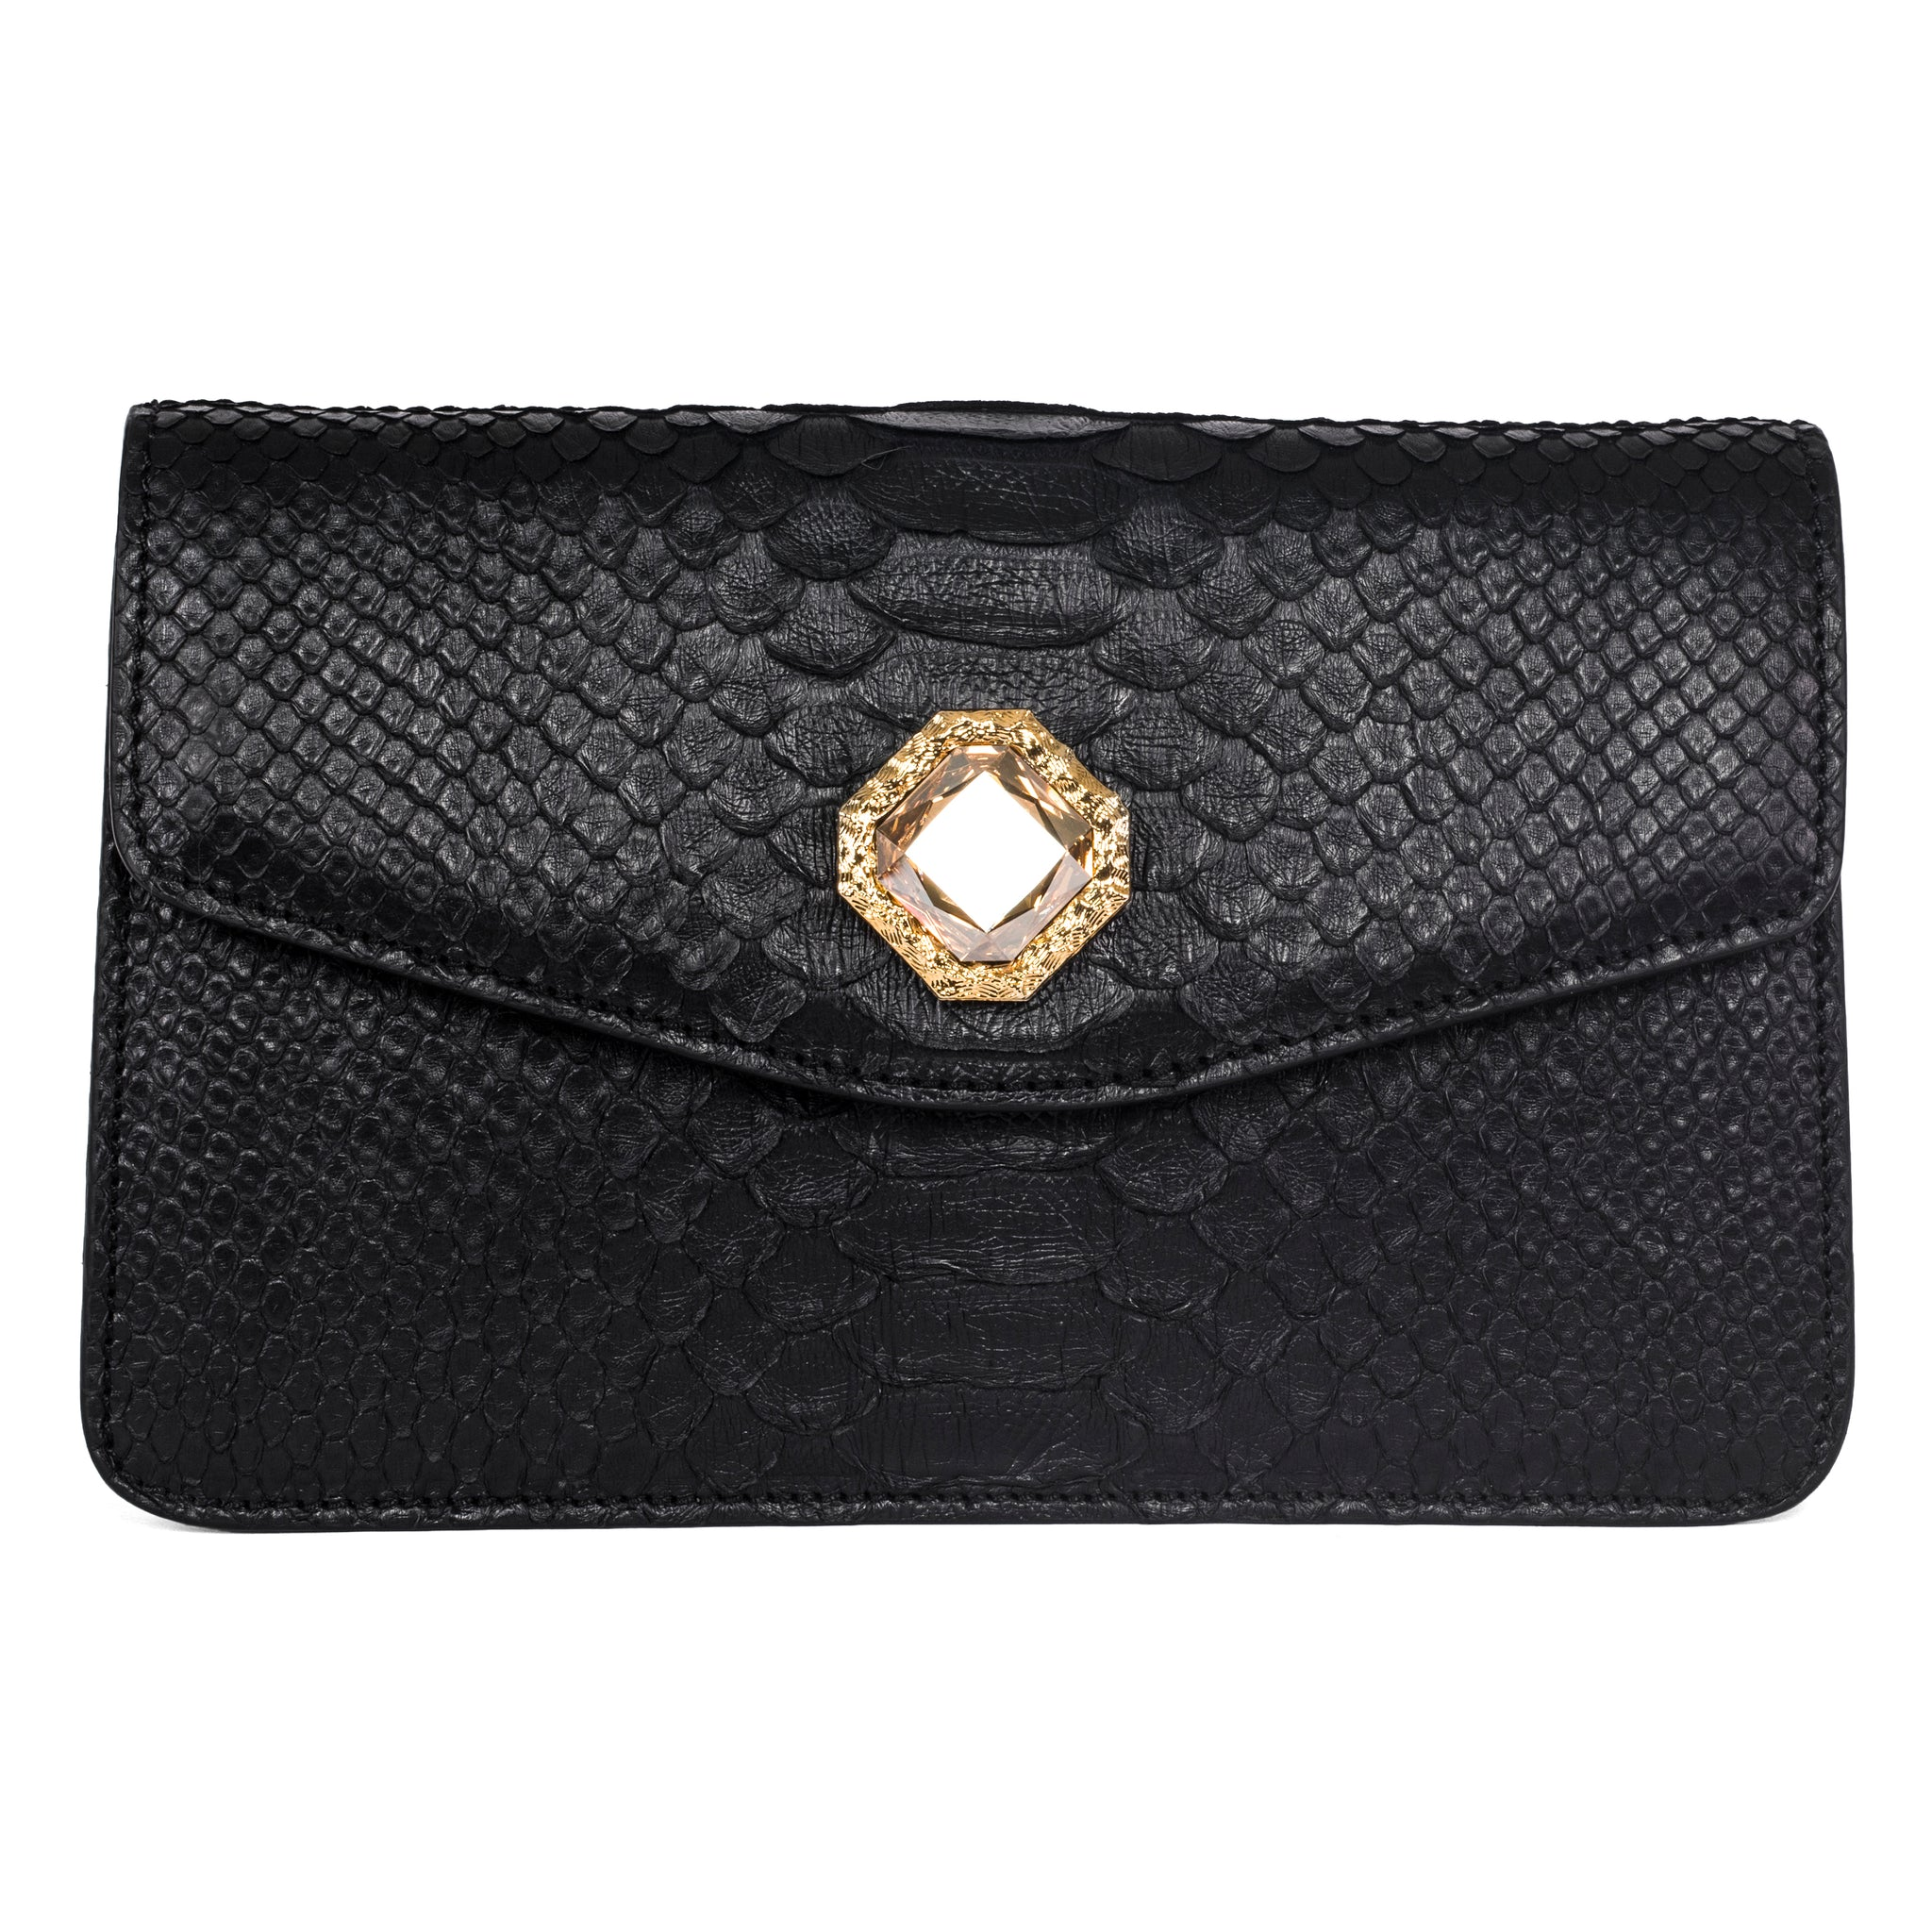 9e8a1345983 Black Python Clutch with Custom Swarovski Stone